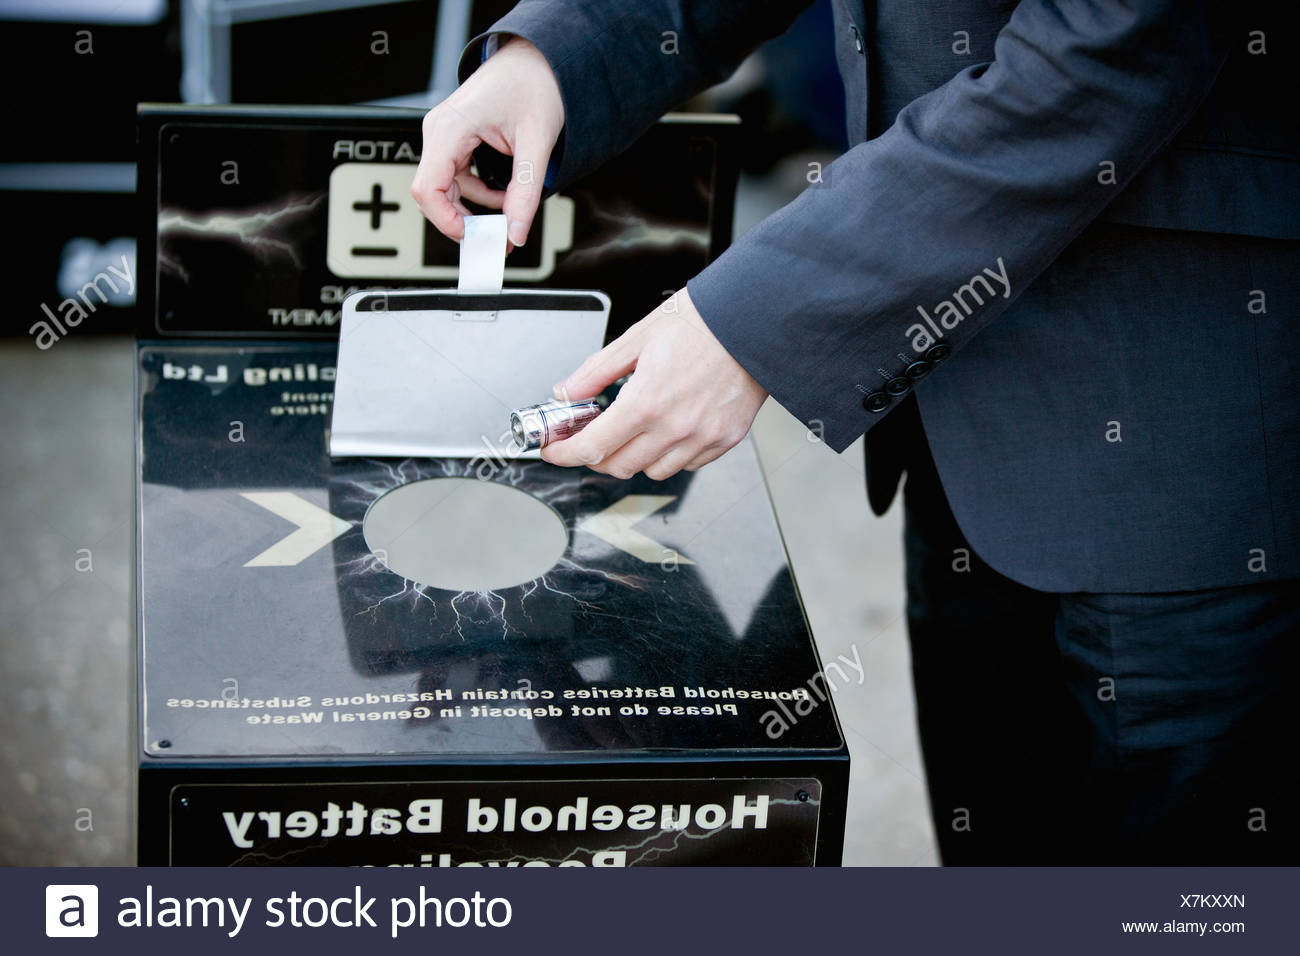 A businessman recycling household batteries - Stock Image